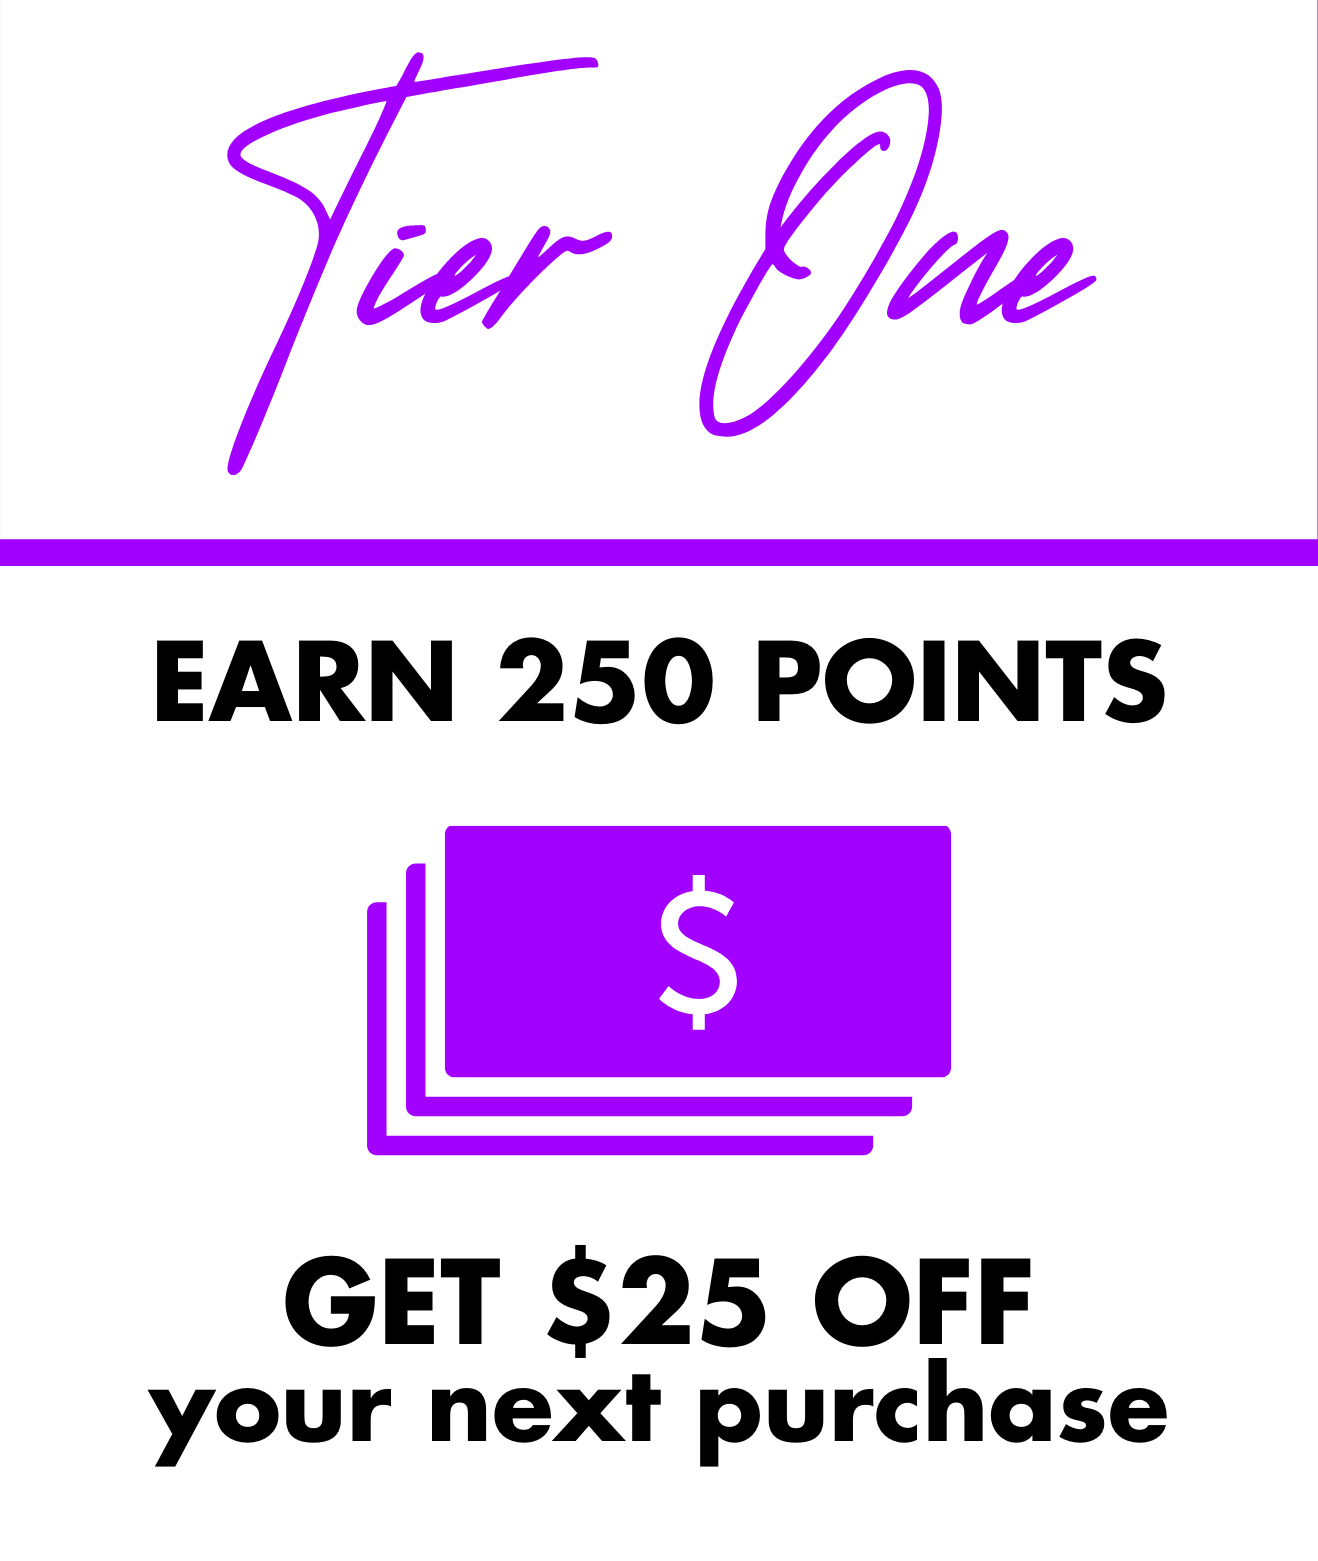 Tier One: Earn 250 points and get $25 off your next purchase!